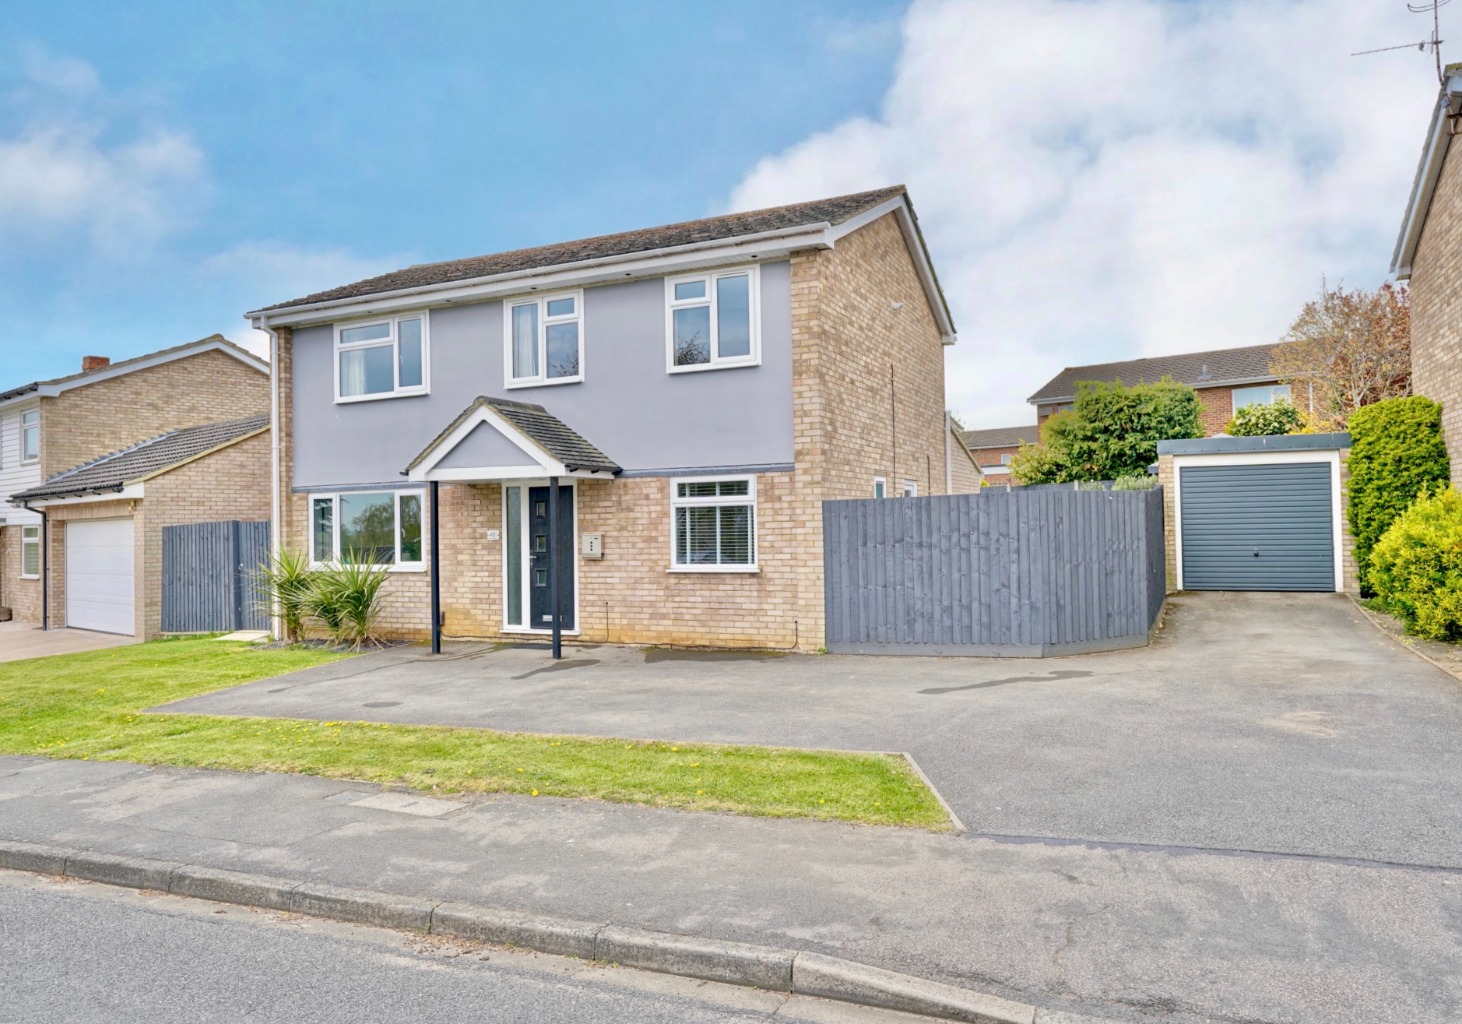 4 bed detached house for sale in Milton Avenue, St. Neots  - Property Image 1